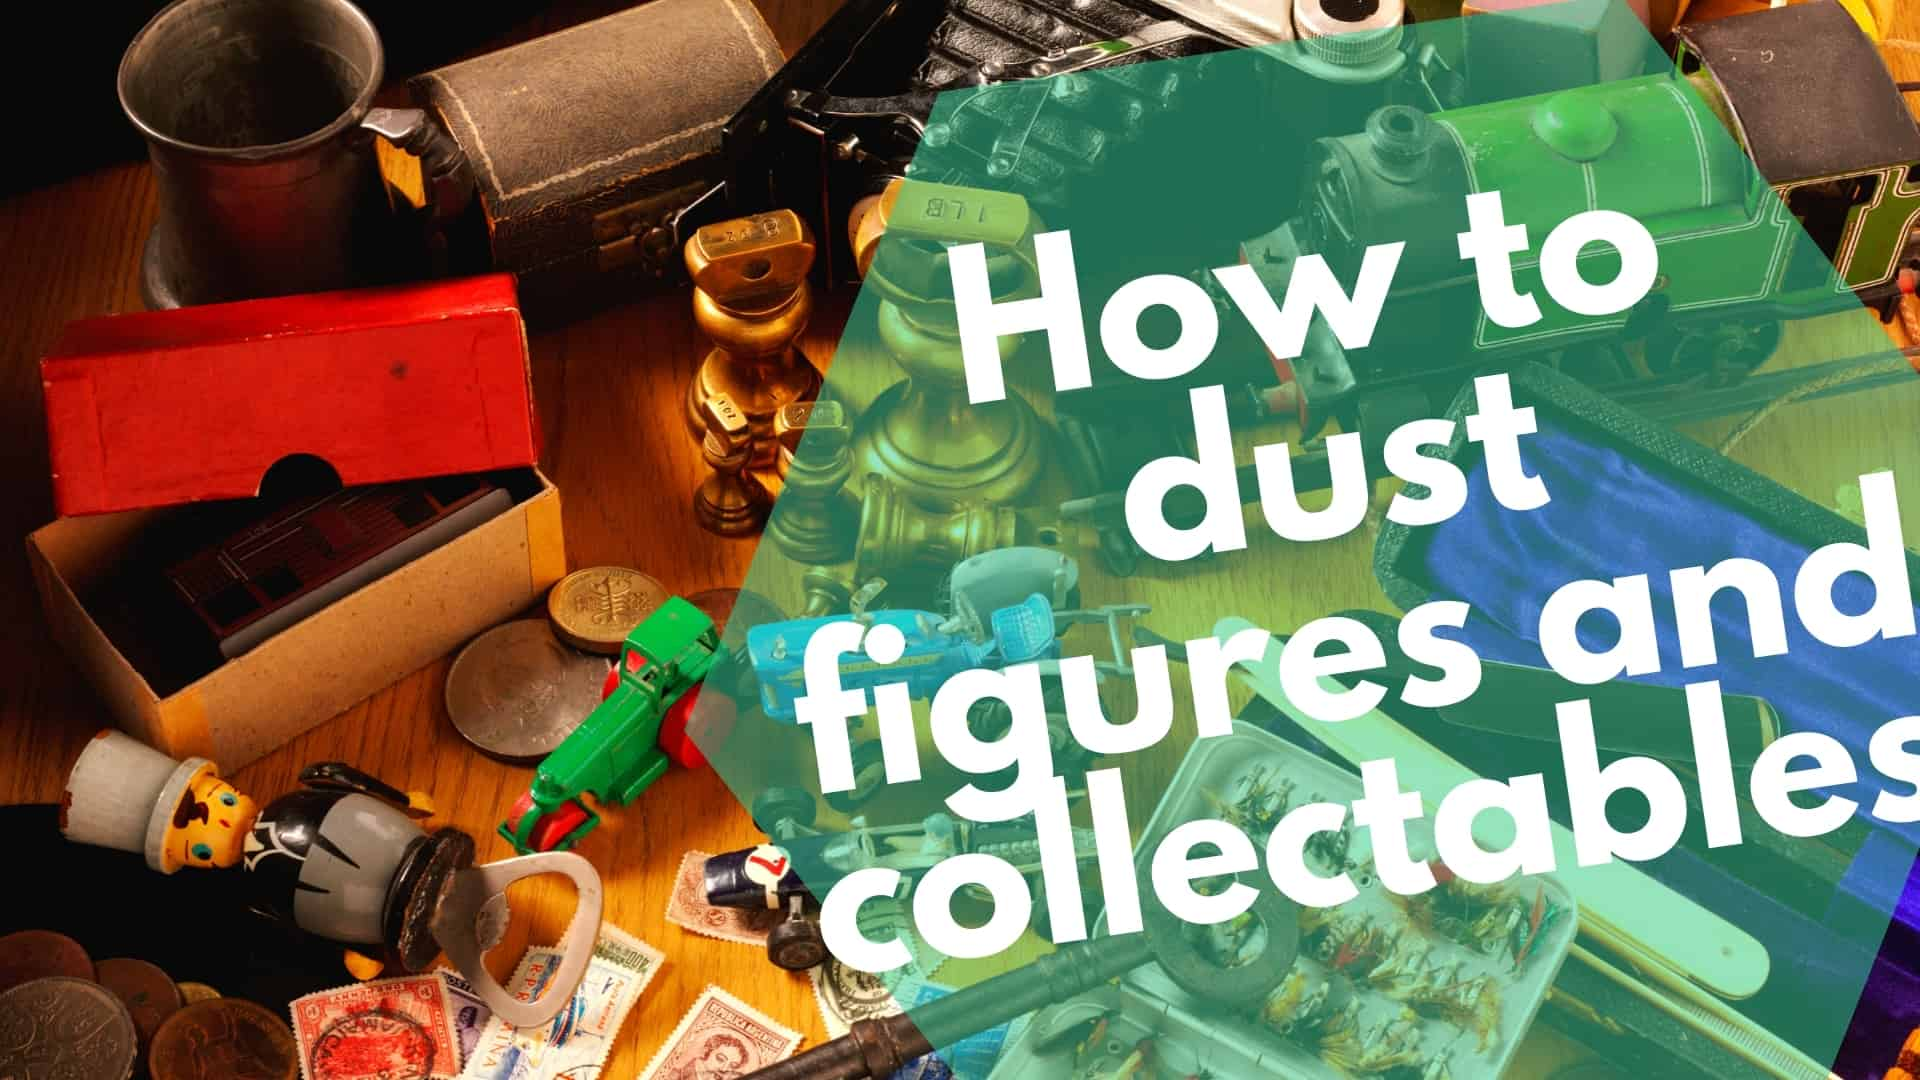 Best Way to Dust Figures & Collectables: Take Care Of Your Collection